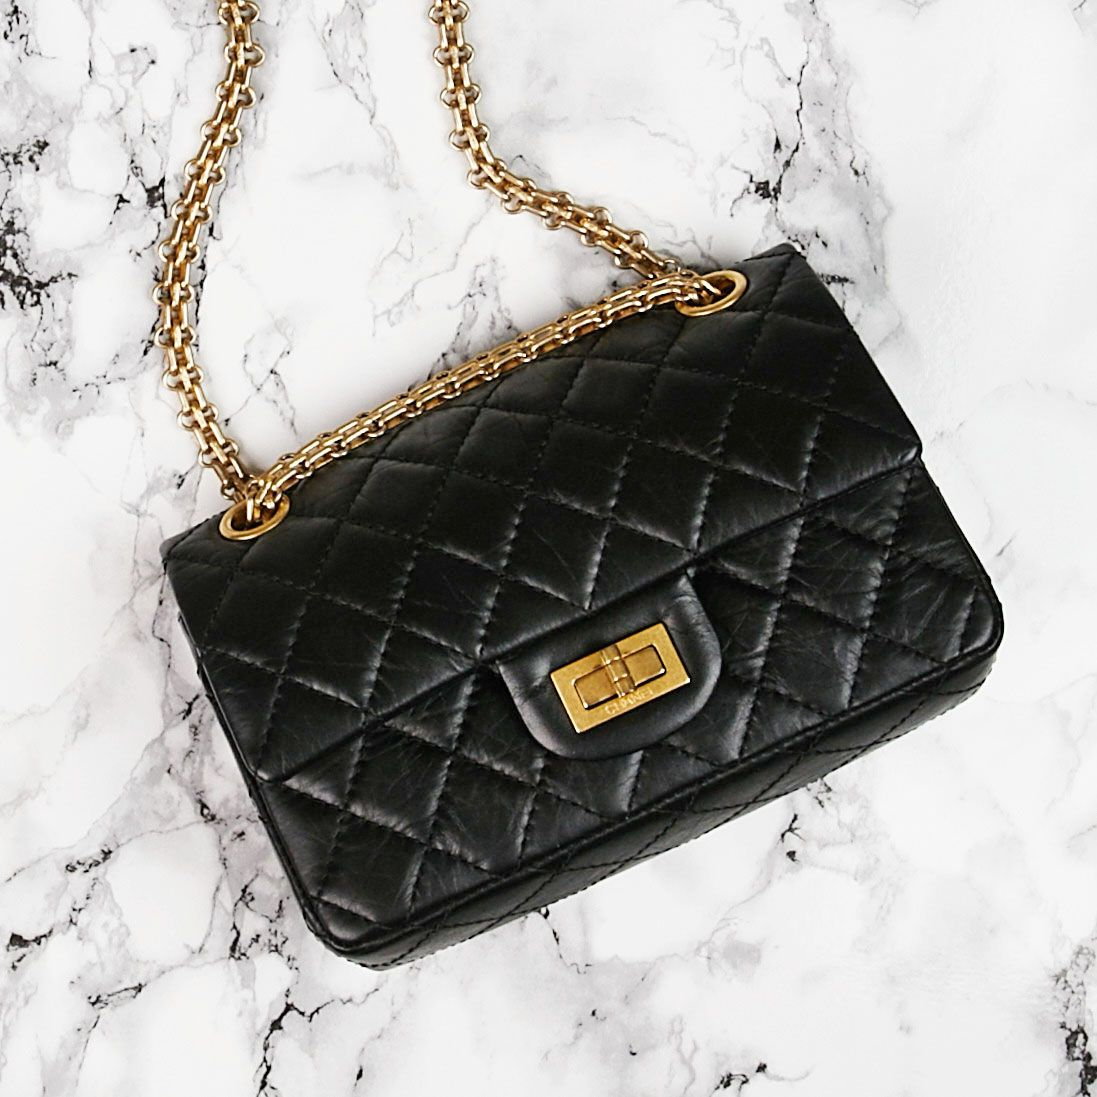 6354ebeafcf9 Add a touch of class to any outfit with this small Chanel 2.55 Reissue  Flap! - Yoogi's Closet | #Chanel